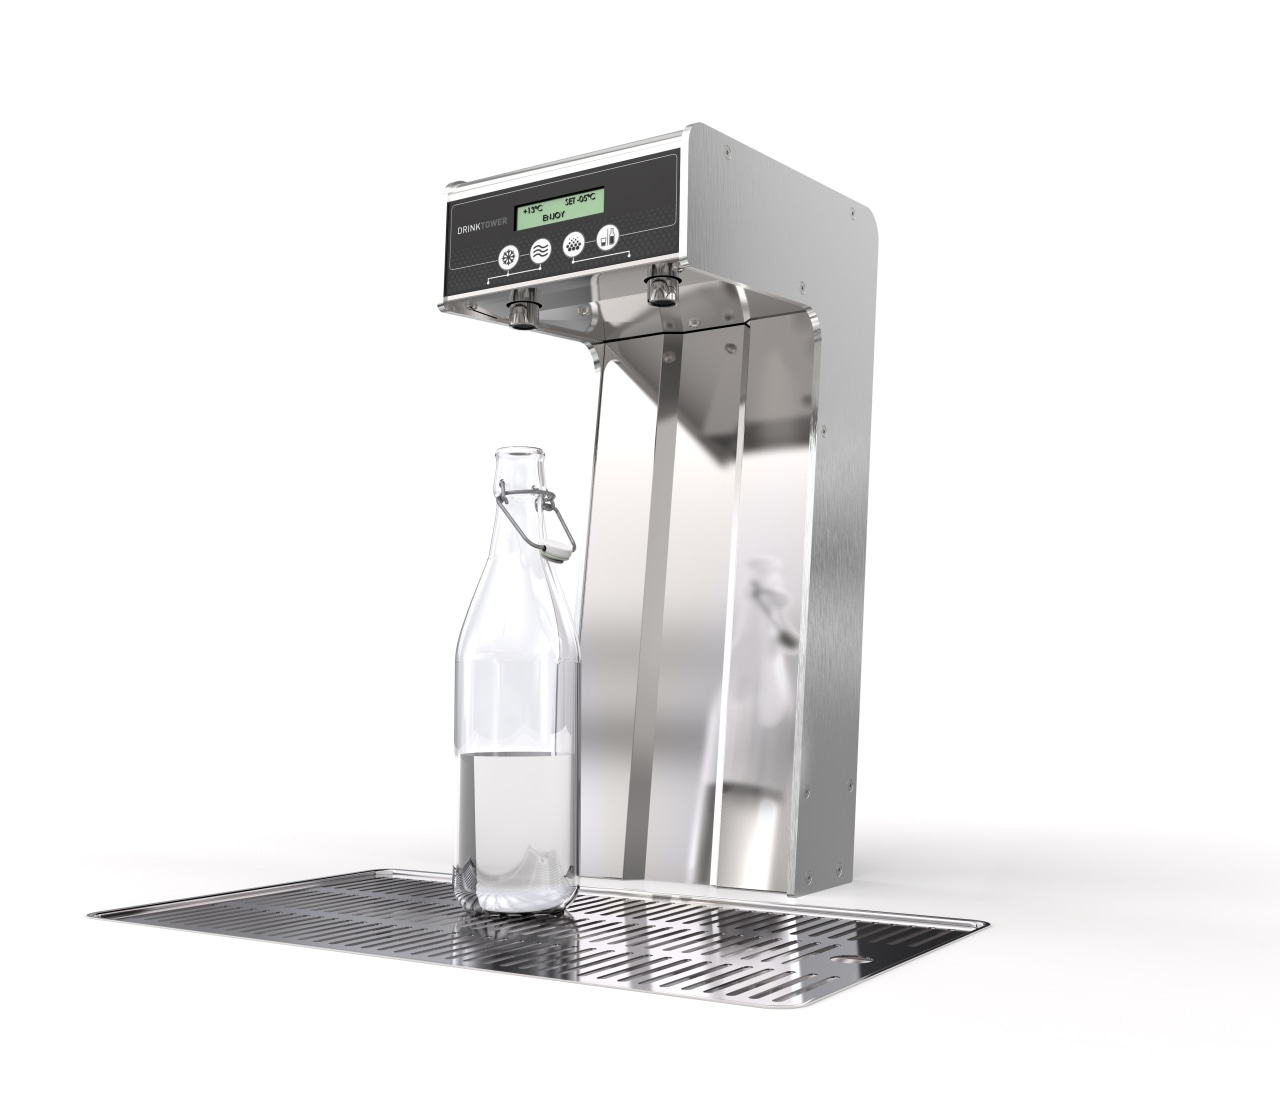 Cosmetal filtered drinking water systems from Merquip offer coffeemaker, espresso machine, kitchen appliance, product, product design, small appliance, white